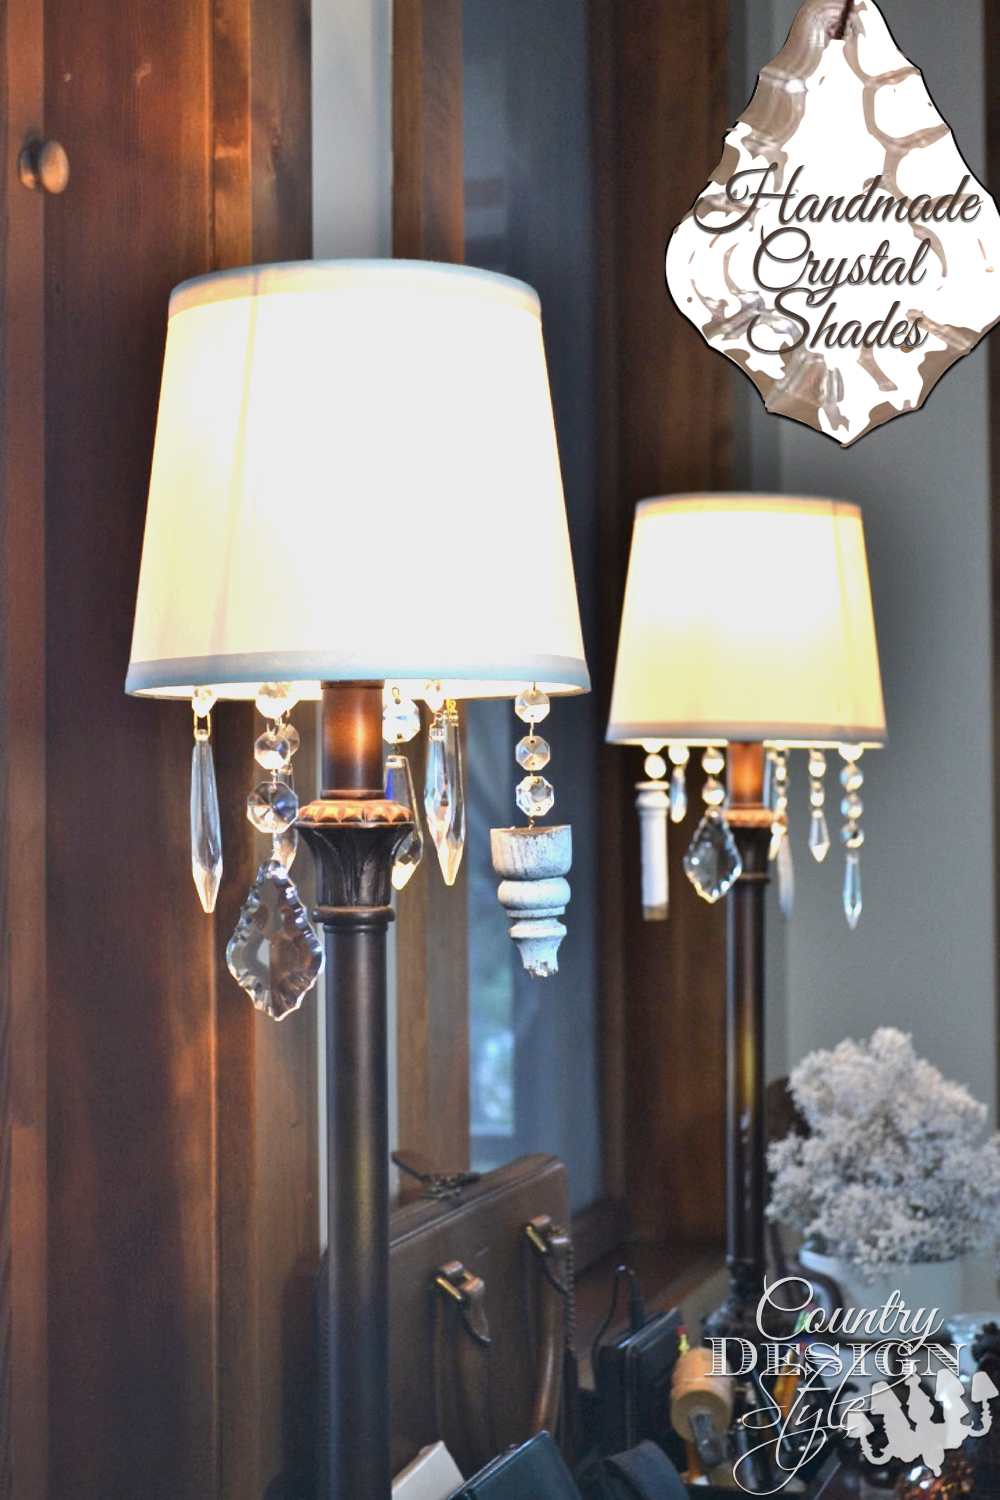 Want to dress up inexpensive lamp shades? A collection of crystals dress up basic lamp shades. It took several tries to get it to work, but an easy idea worked best. Country Design Style